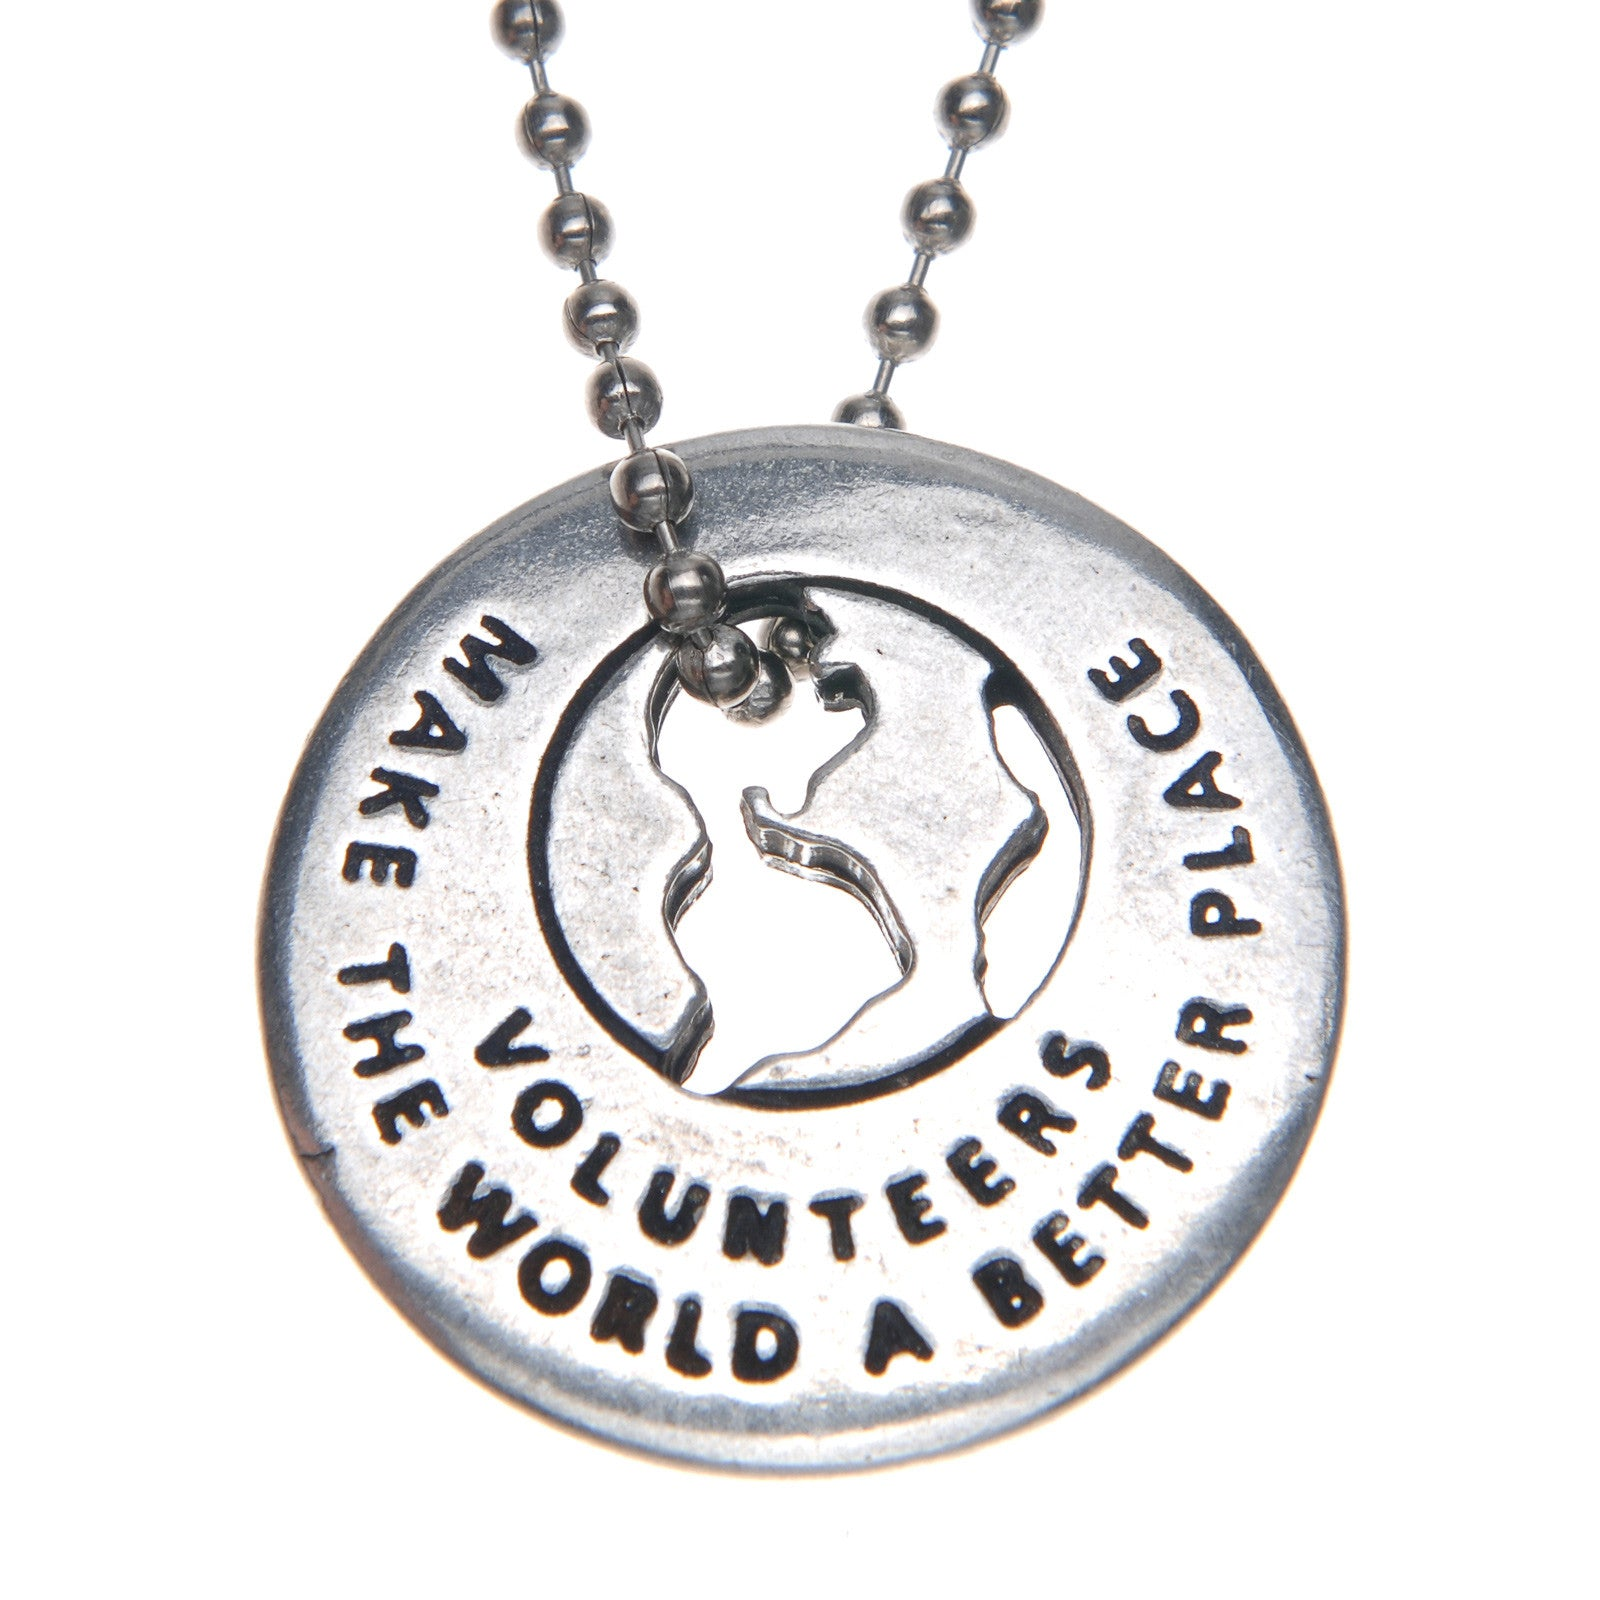 Volunteers Make The World A Better Place Ring On Ballchain - Whitney Howard Designs